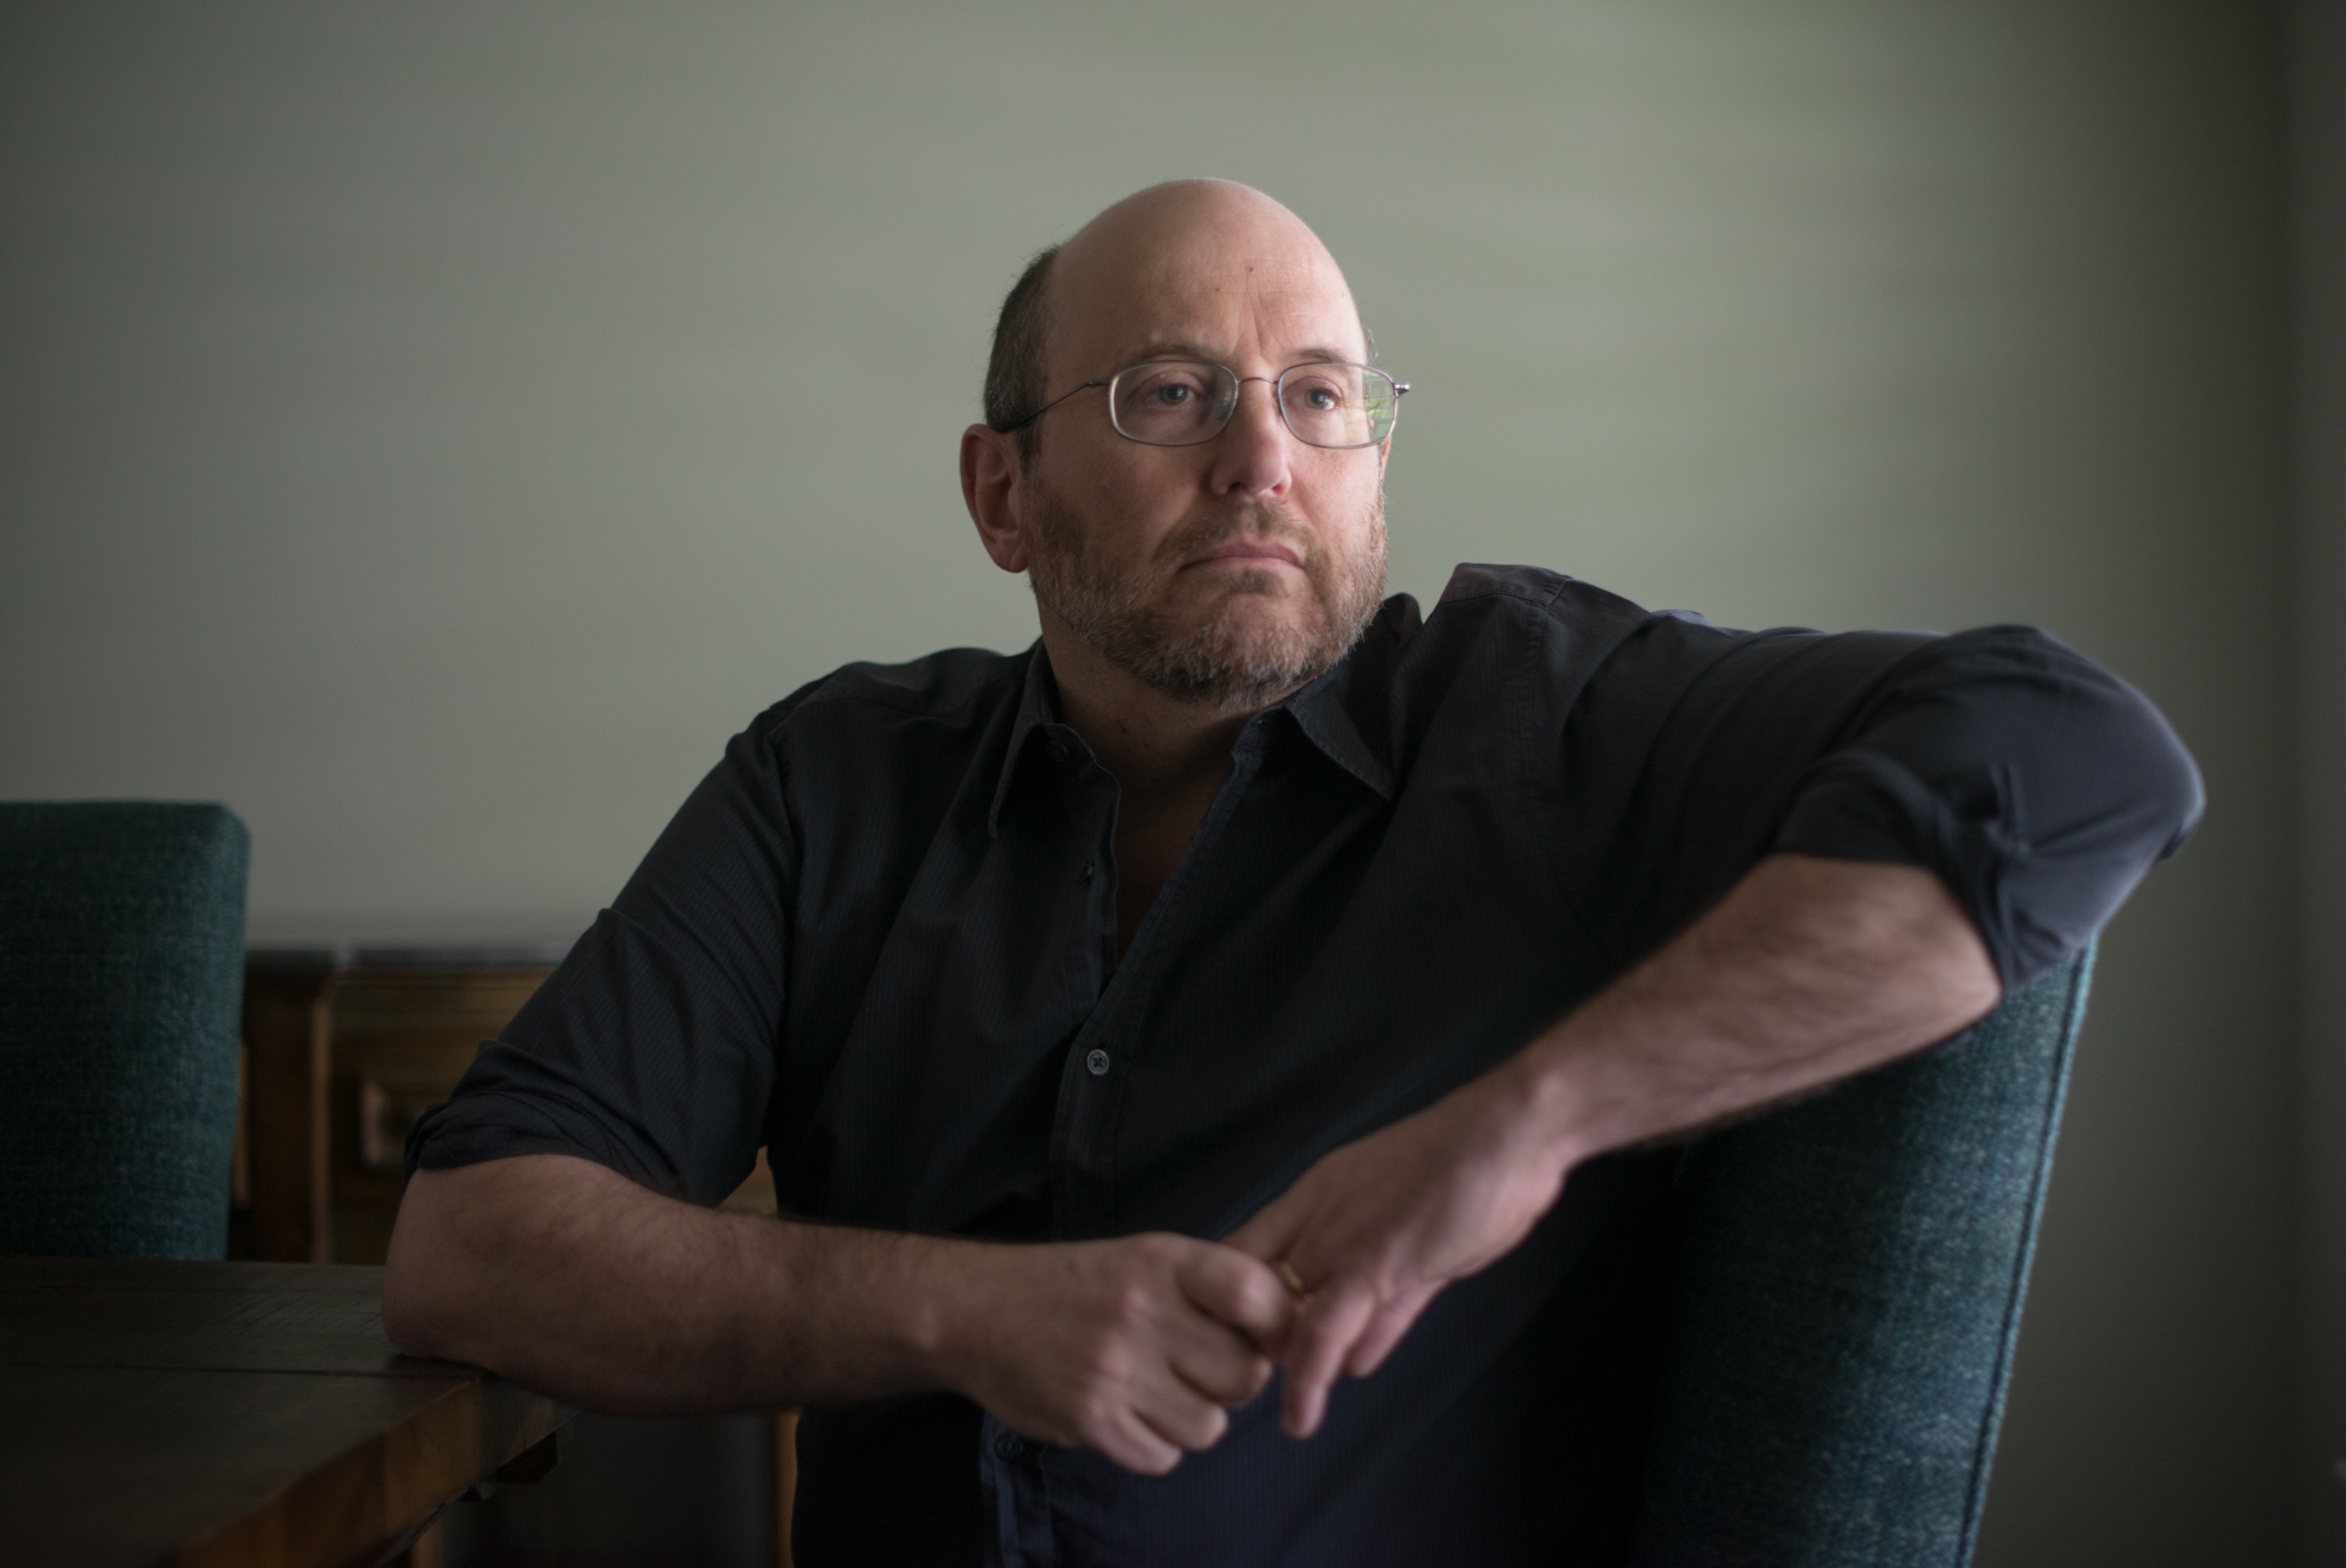 Kurt Eichenwald, an investigative journalist and prominent online critic of Donald Trump, at home in Dallas.